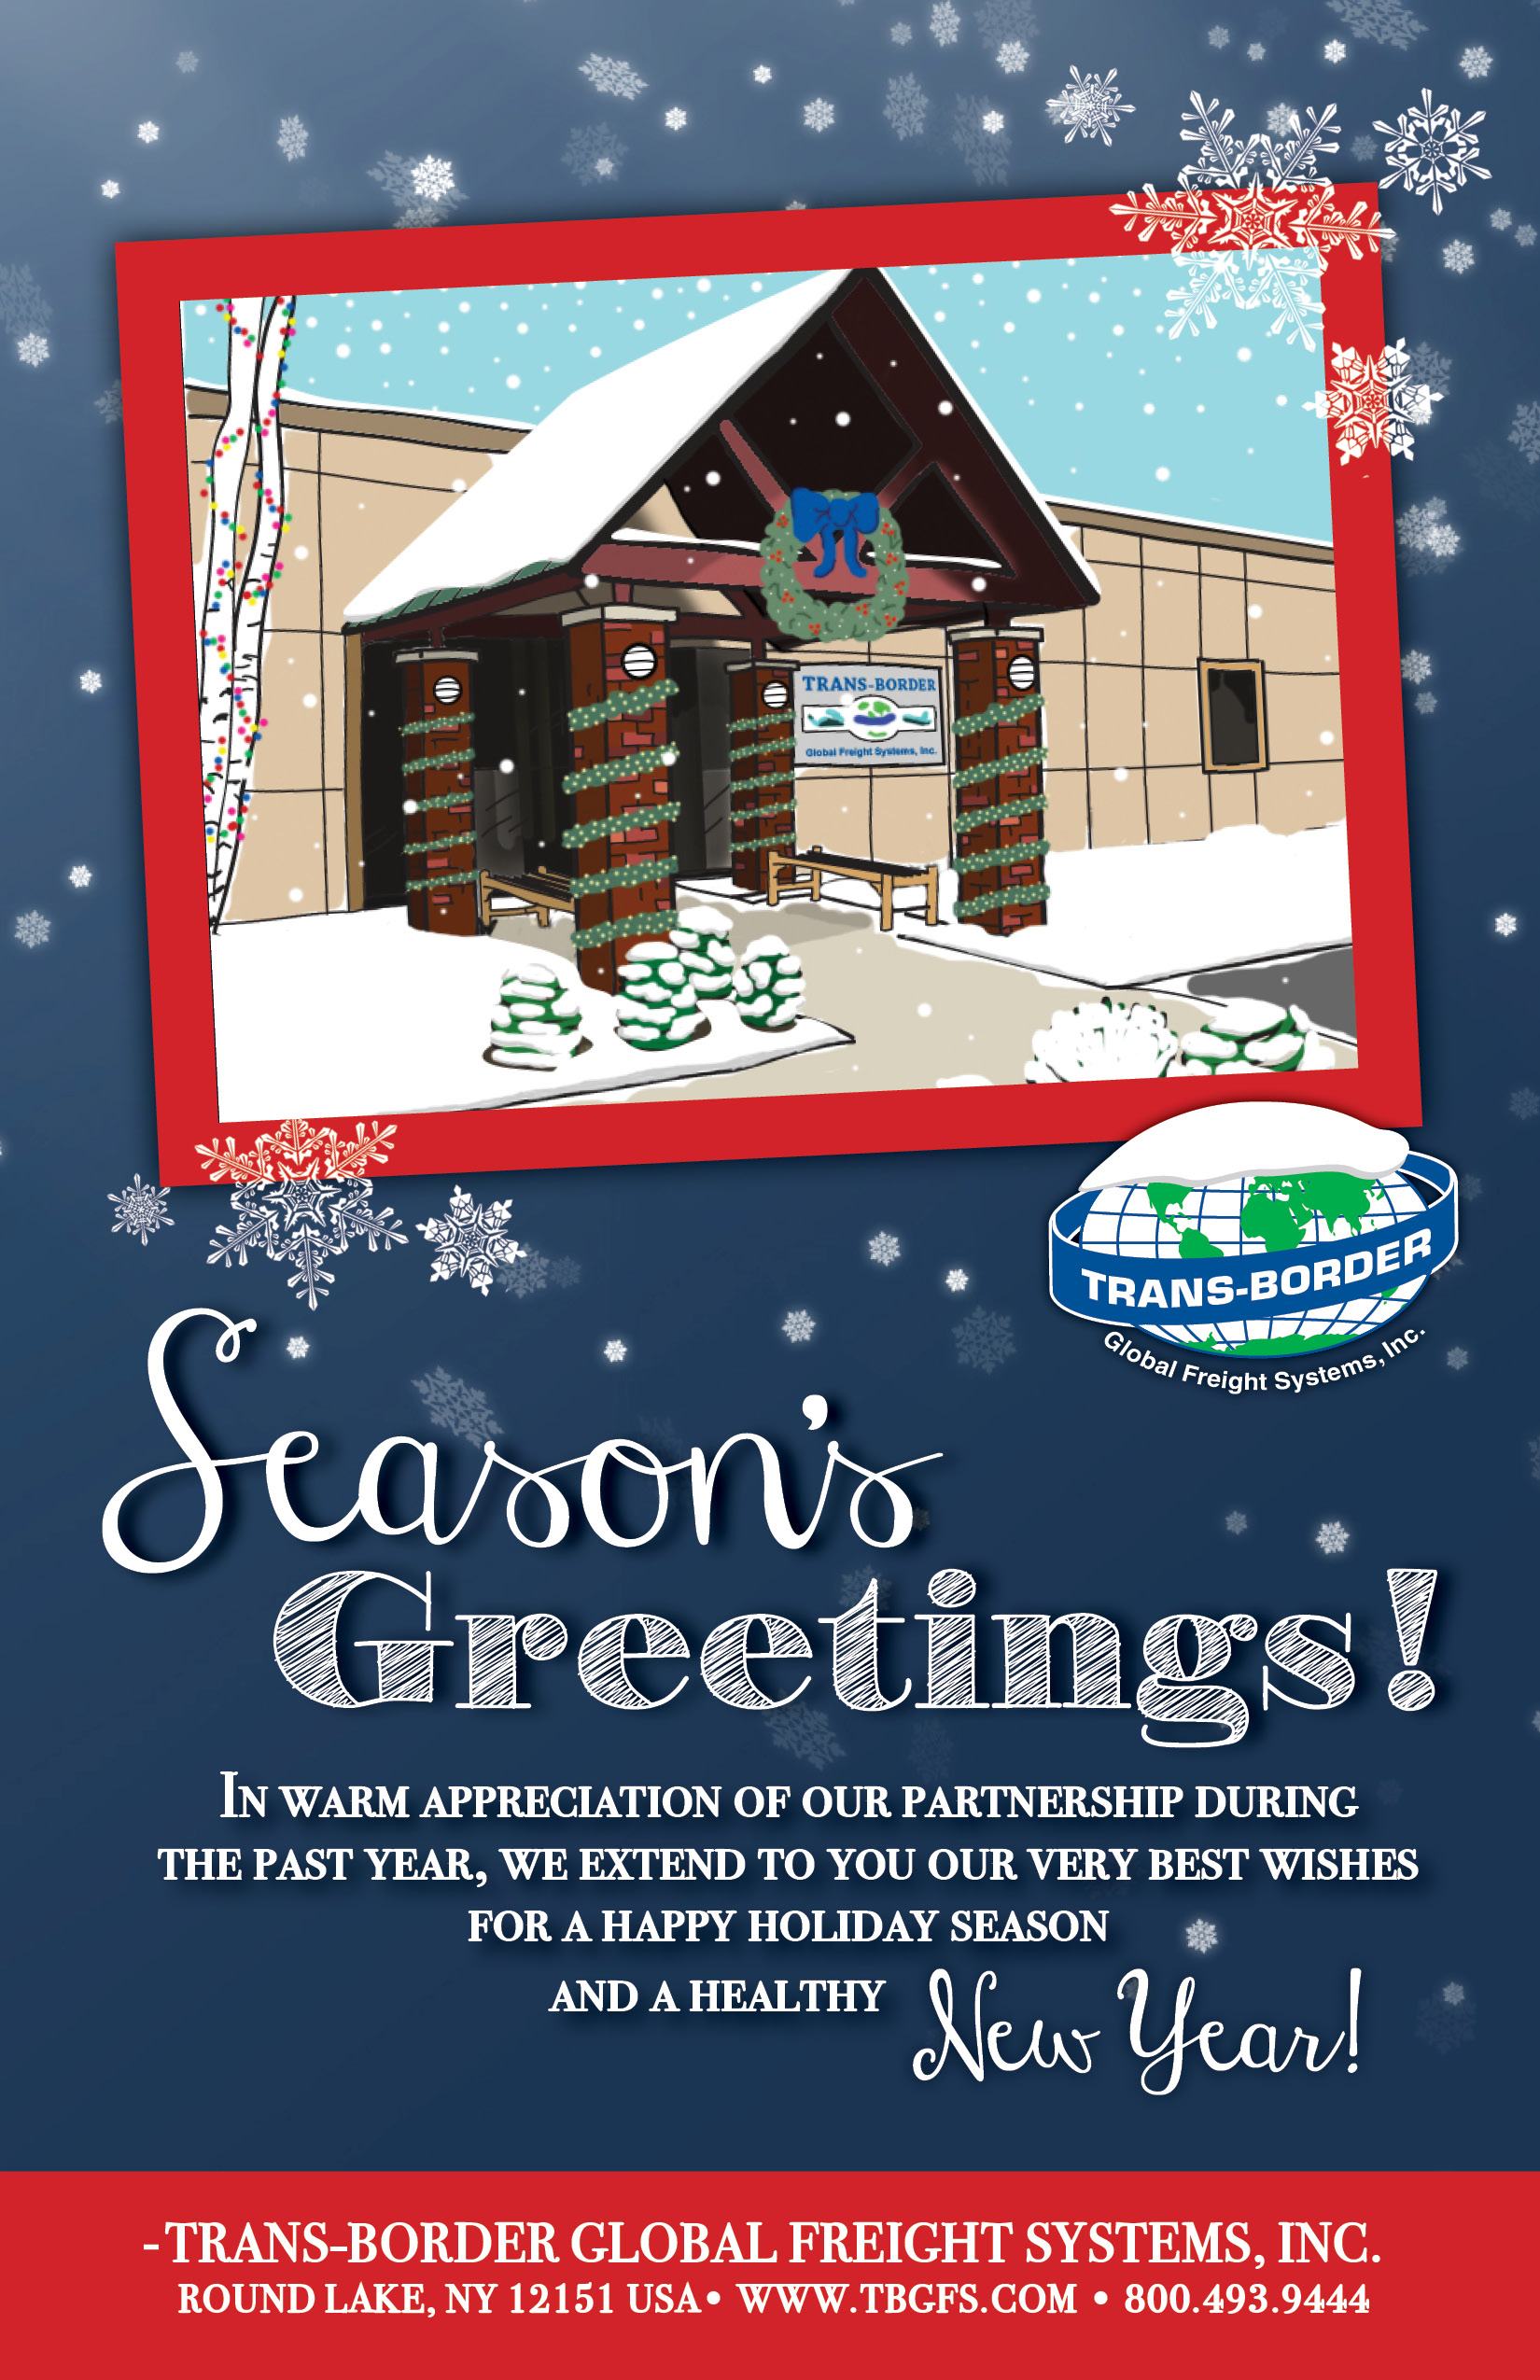 Seasons greetings trans border global freight systems inc christmas card examples kristyandbryce Gallery